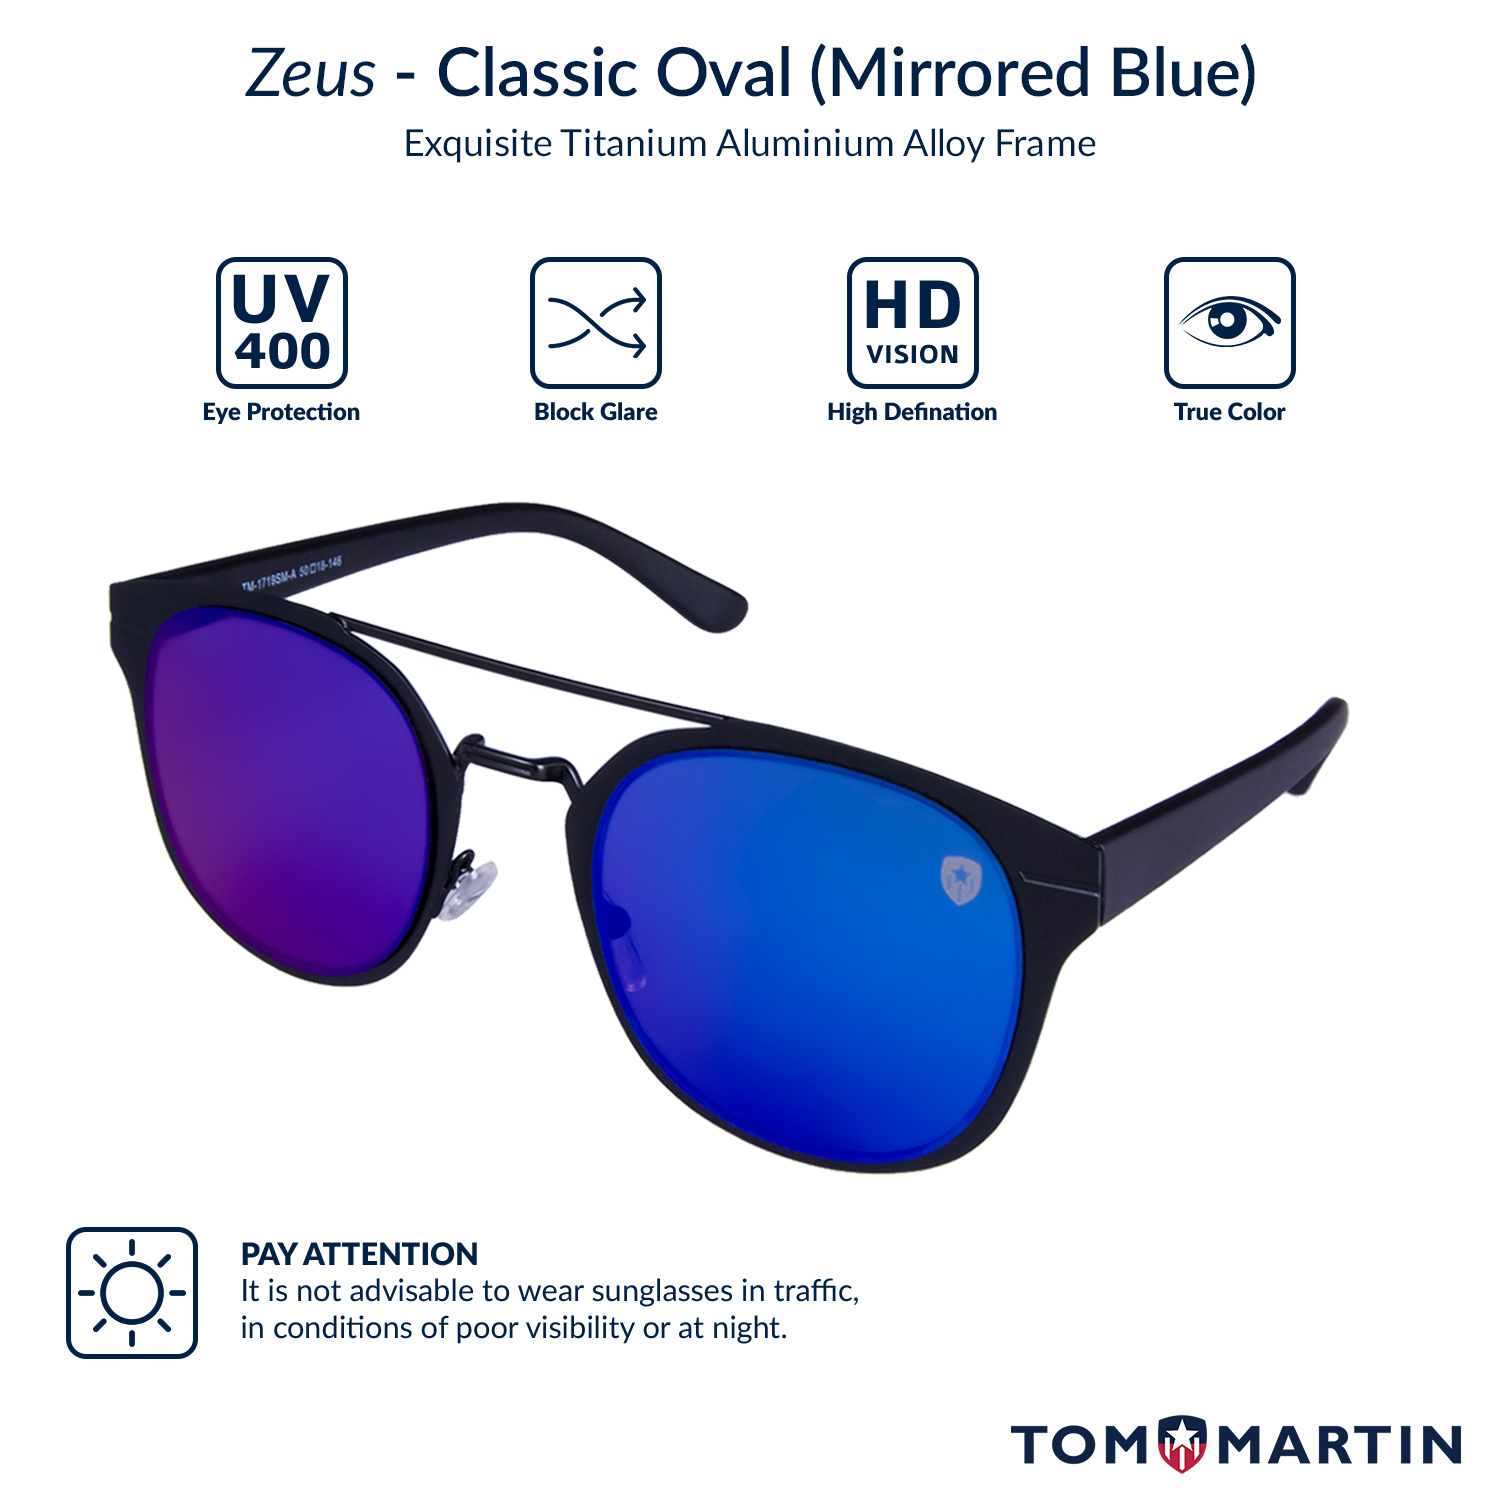 598c1f104de Zeus - Mirrored Blue Sunglasses for Women